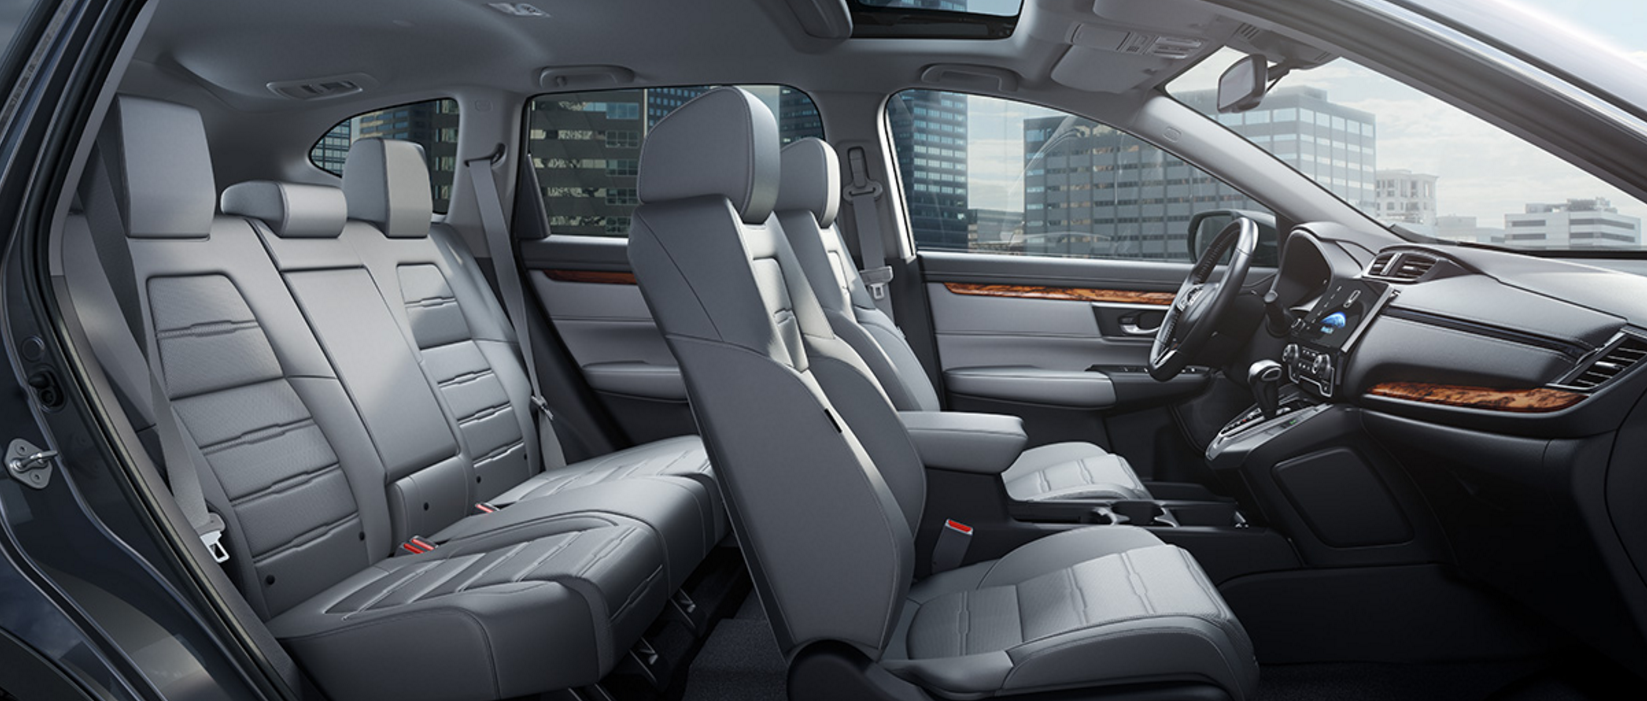 Valley Chevy Top Rated Suvs To Honda Cr V Interior